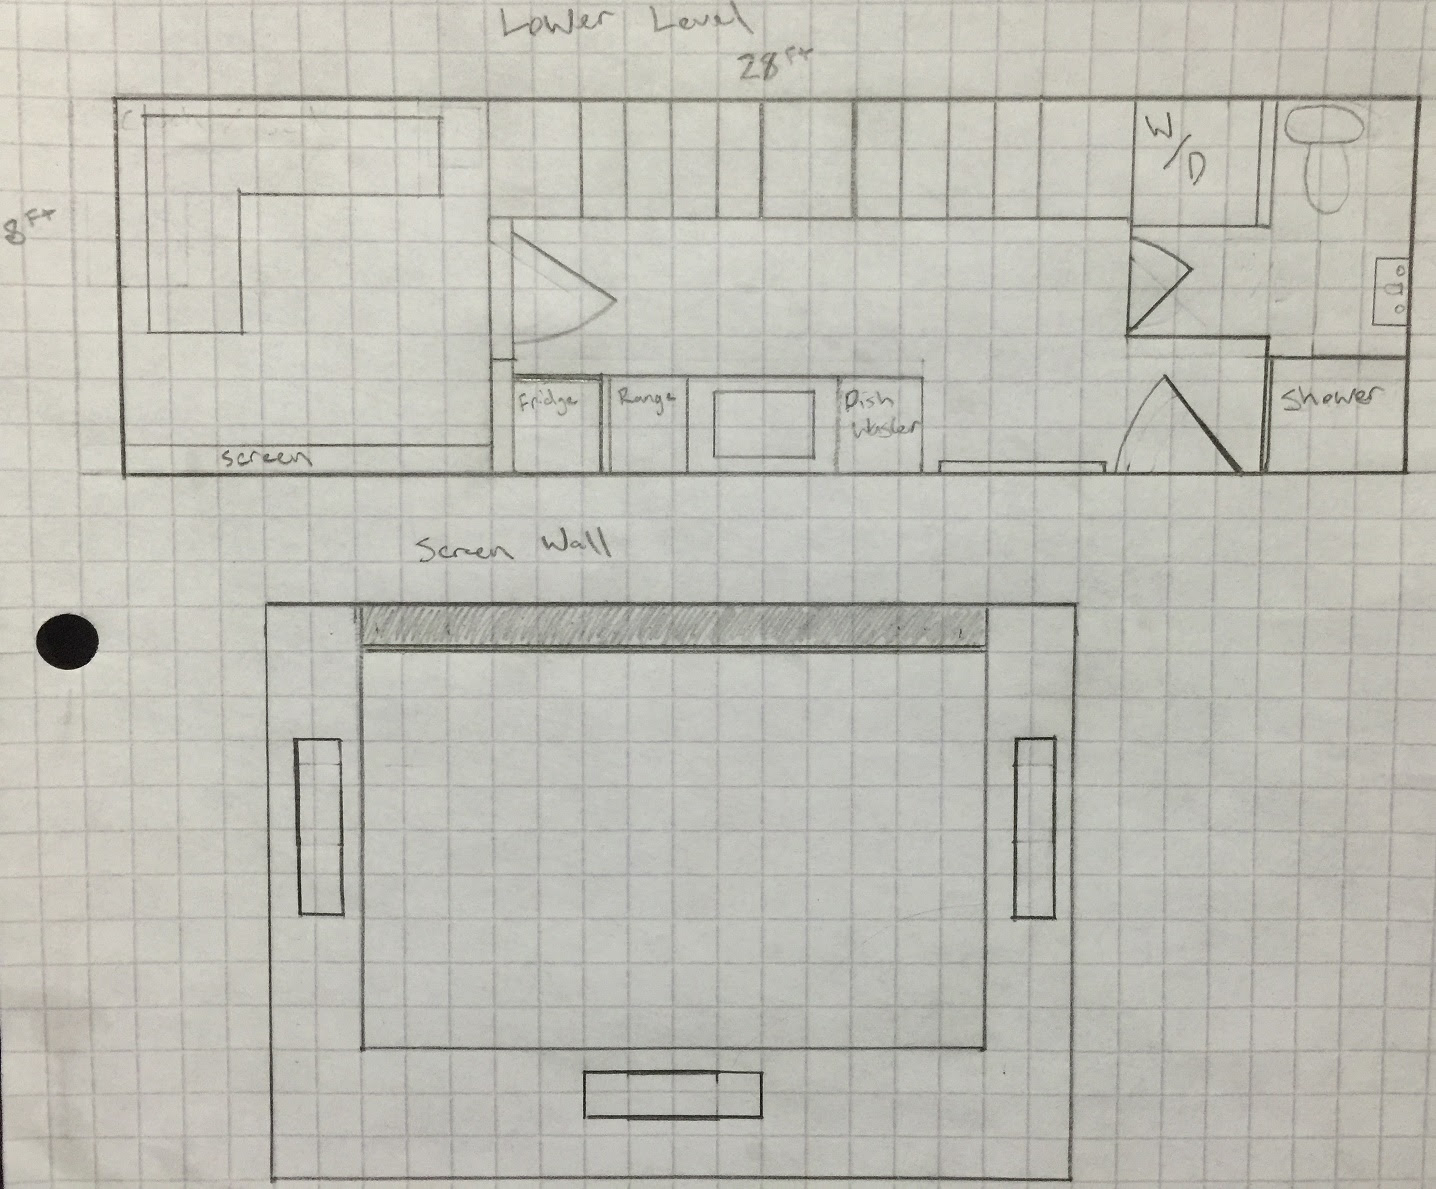 Designing My Own Tiny House Based On The Home Tiny House Design But With A Home Theater Tinyhouses